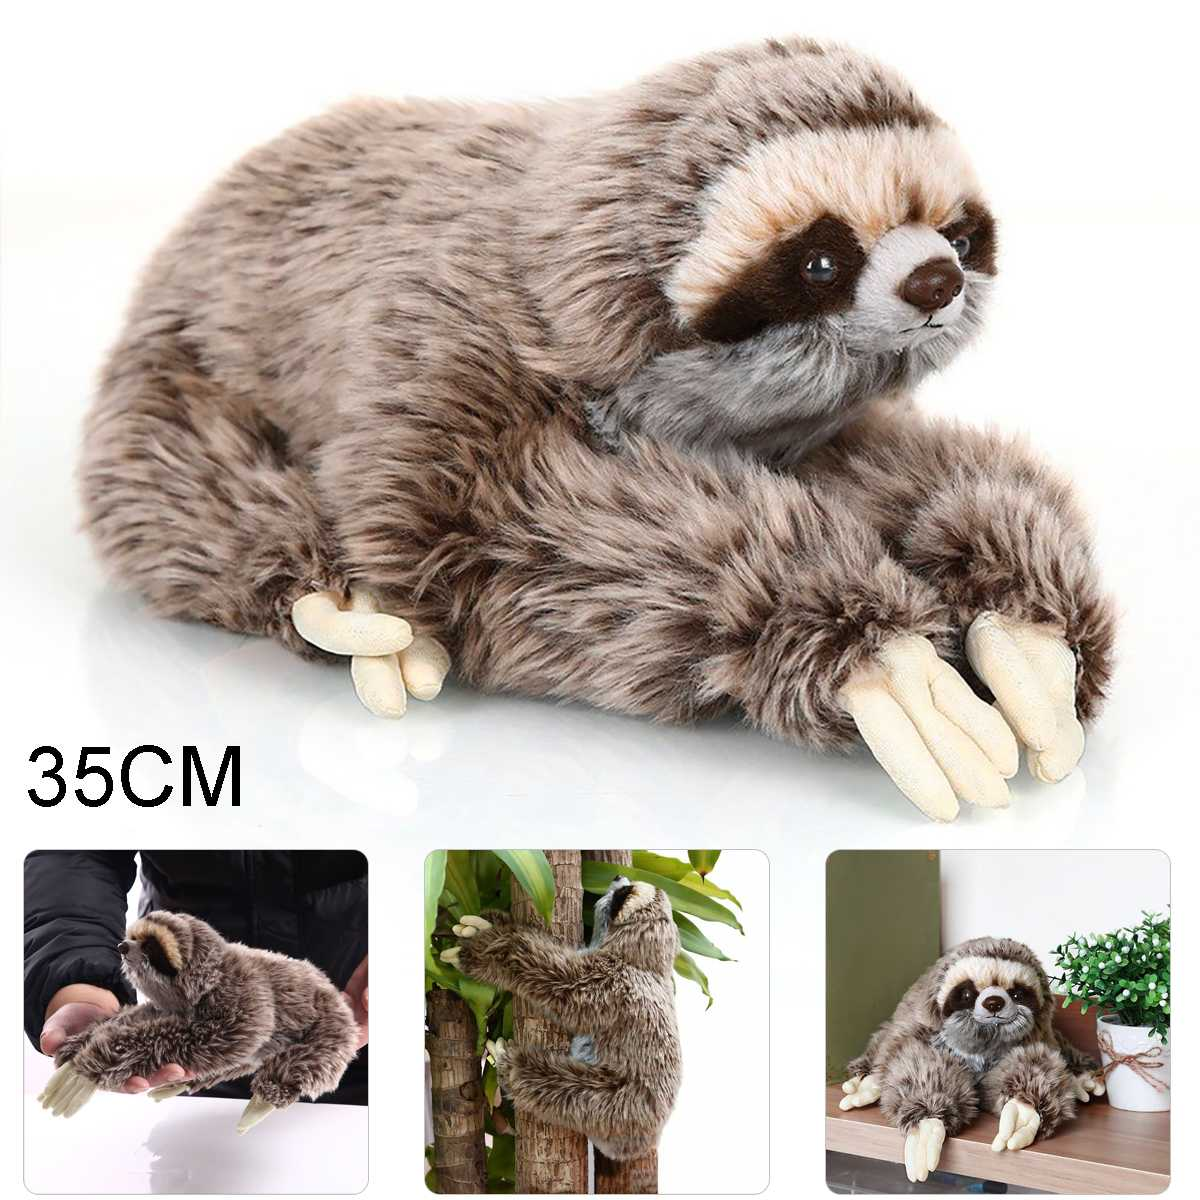 35cm Stuffed Toy Three Toed Cuddly Lying Animals Lifelike Cute Soft Plush Sloth Critters Children Gifts Doll Birthday